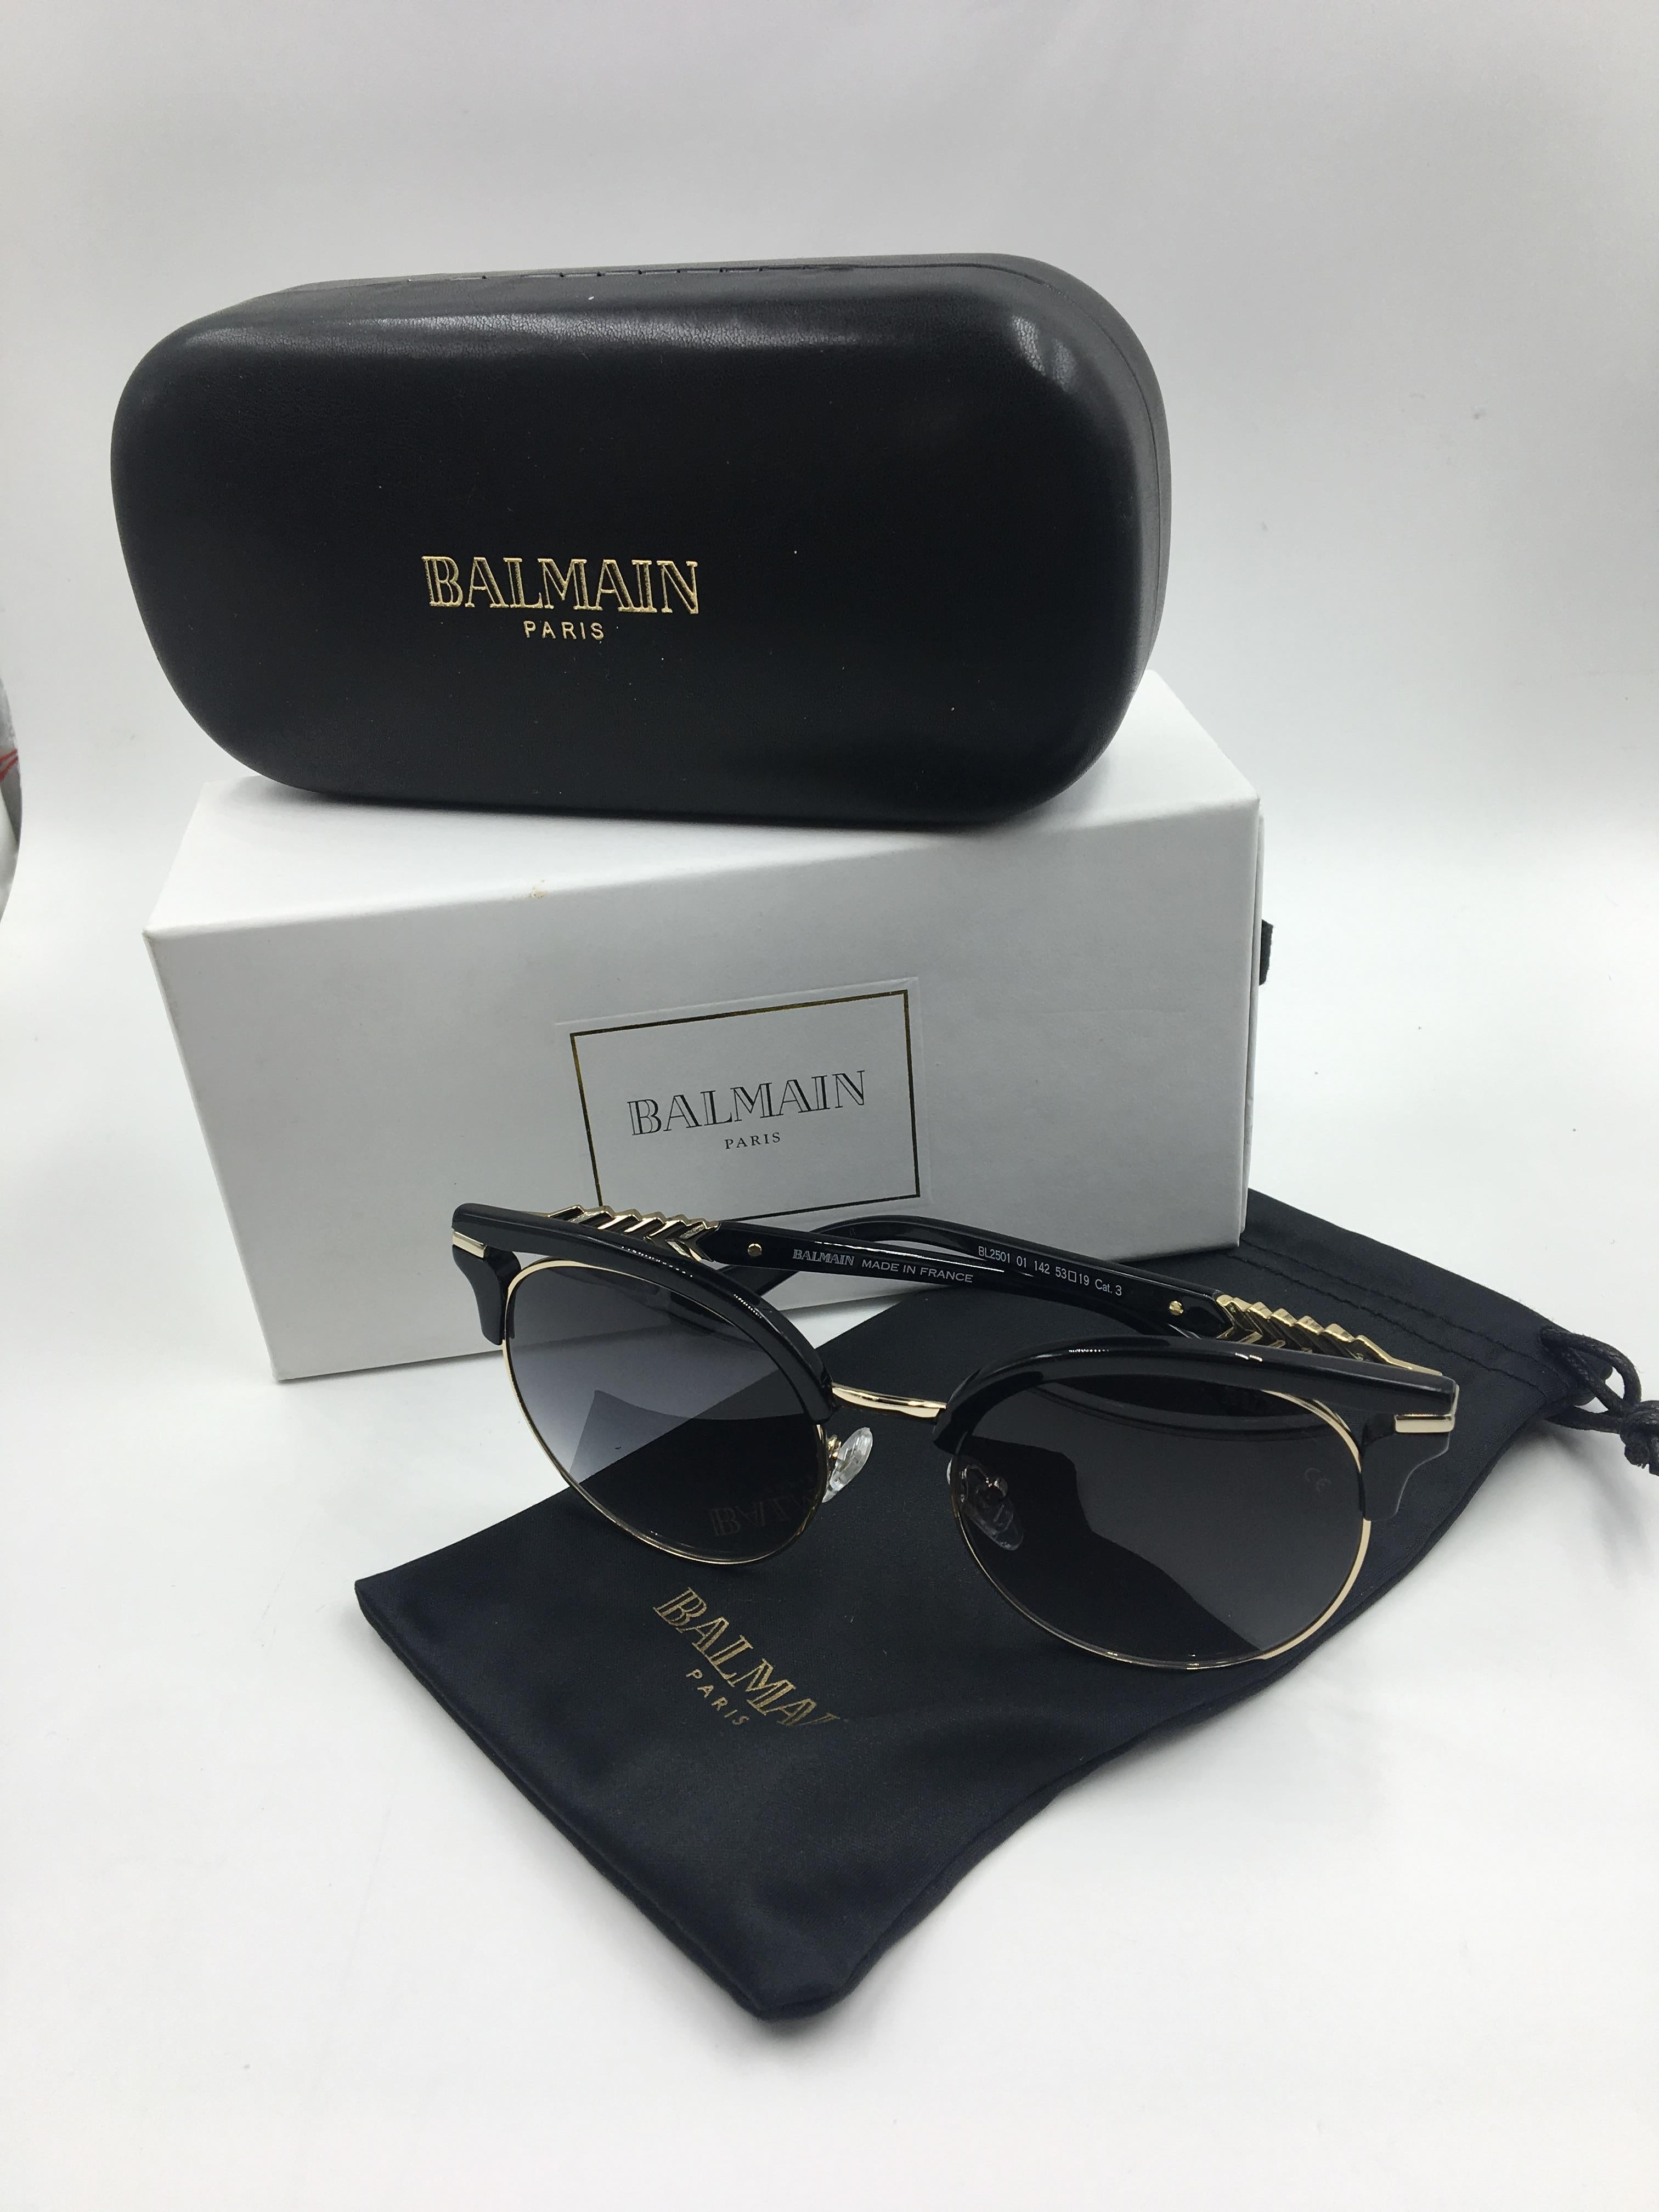 52b6e2a467 Balmain sunglasses at stdibs JPG 3024x4032 Balmain sunglasses